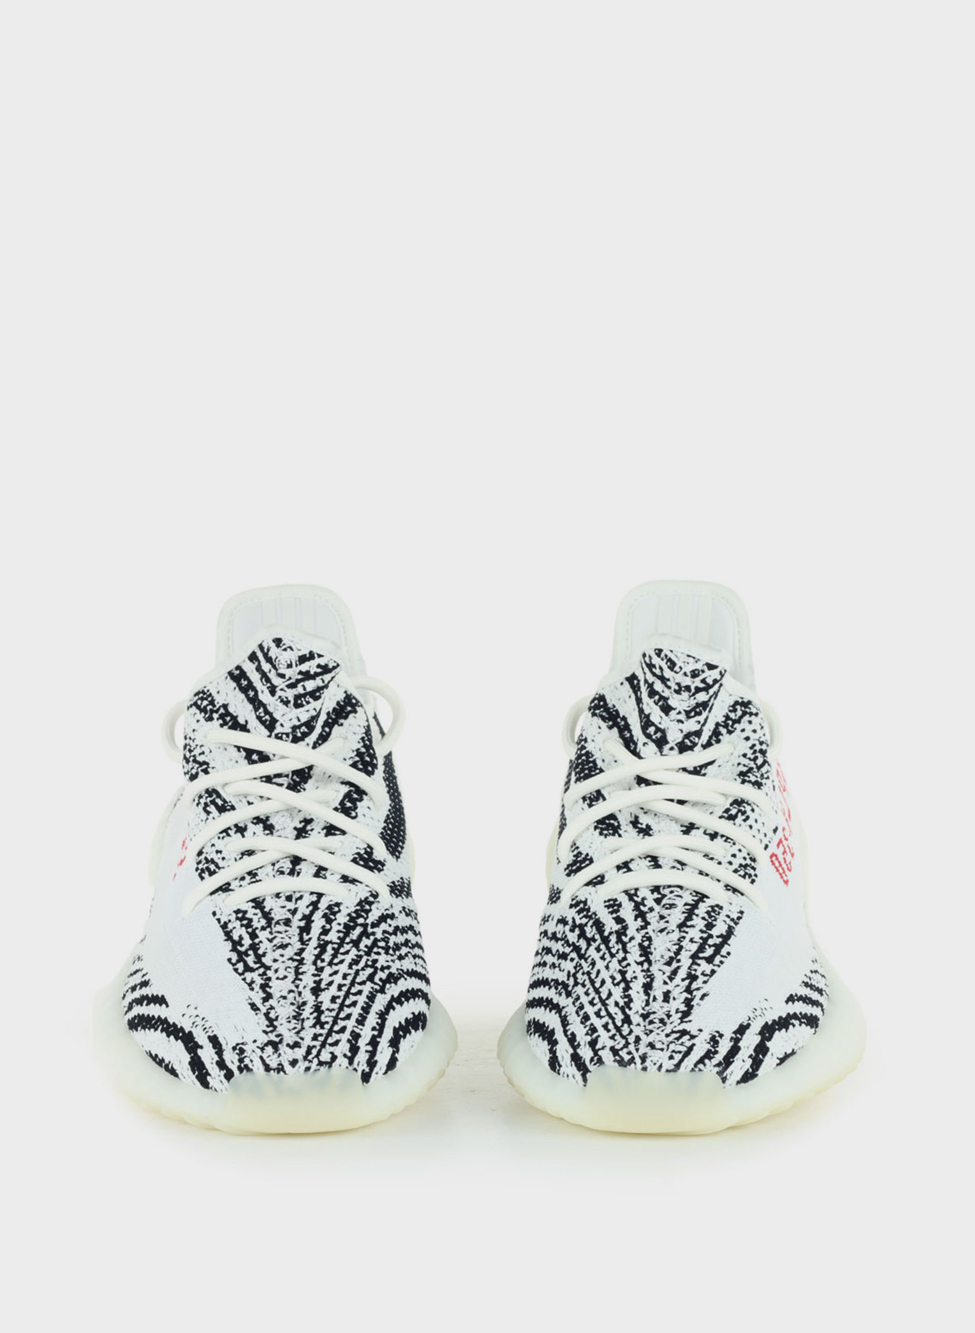 SCARPA YEEZY BOOST 350 V2, WHITE/CBLACK/RED, small